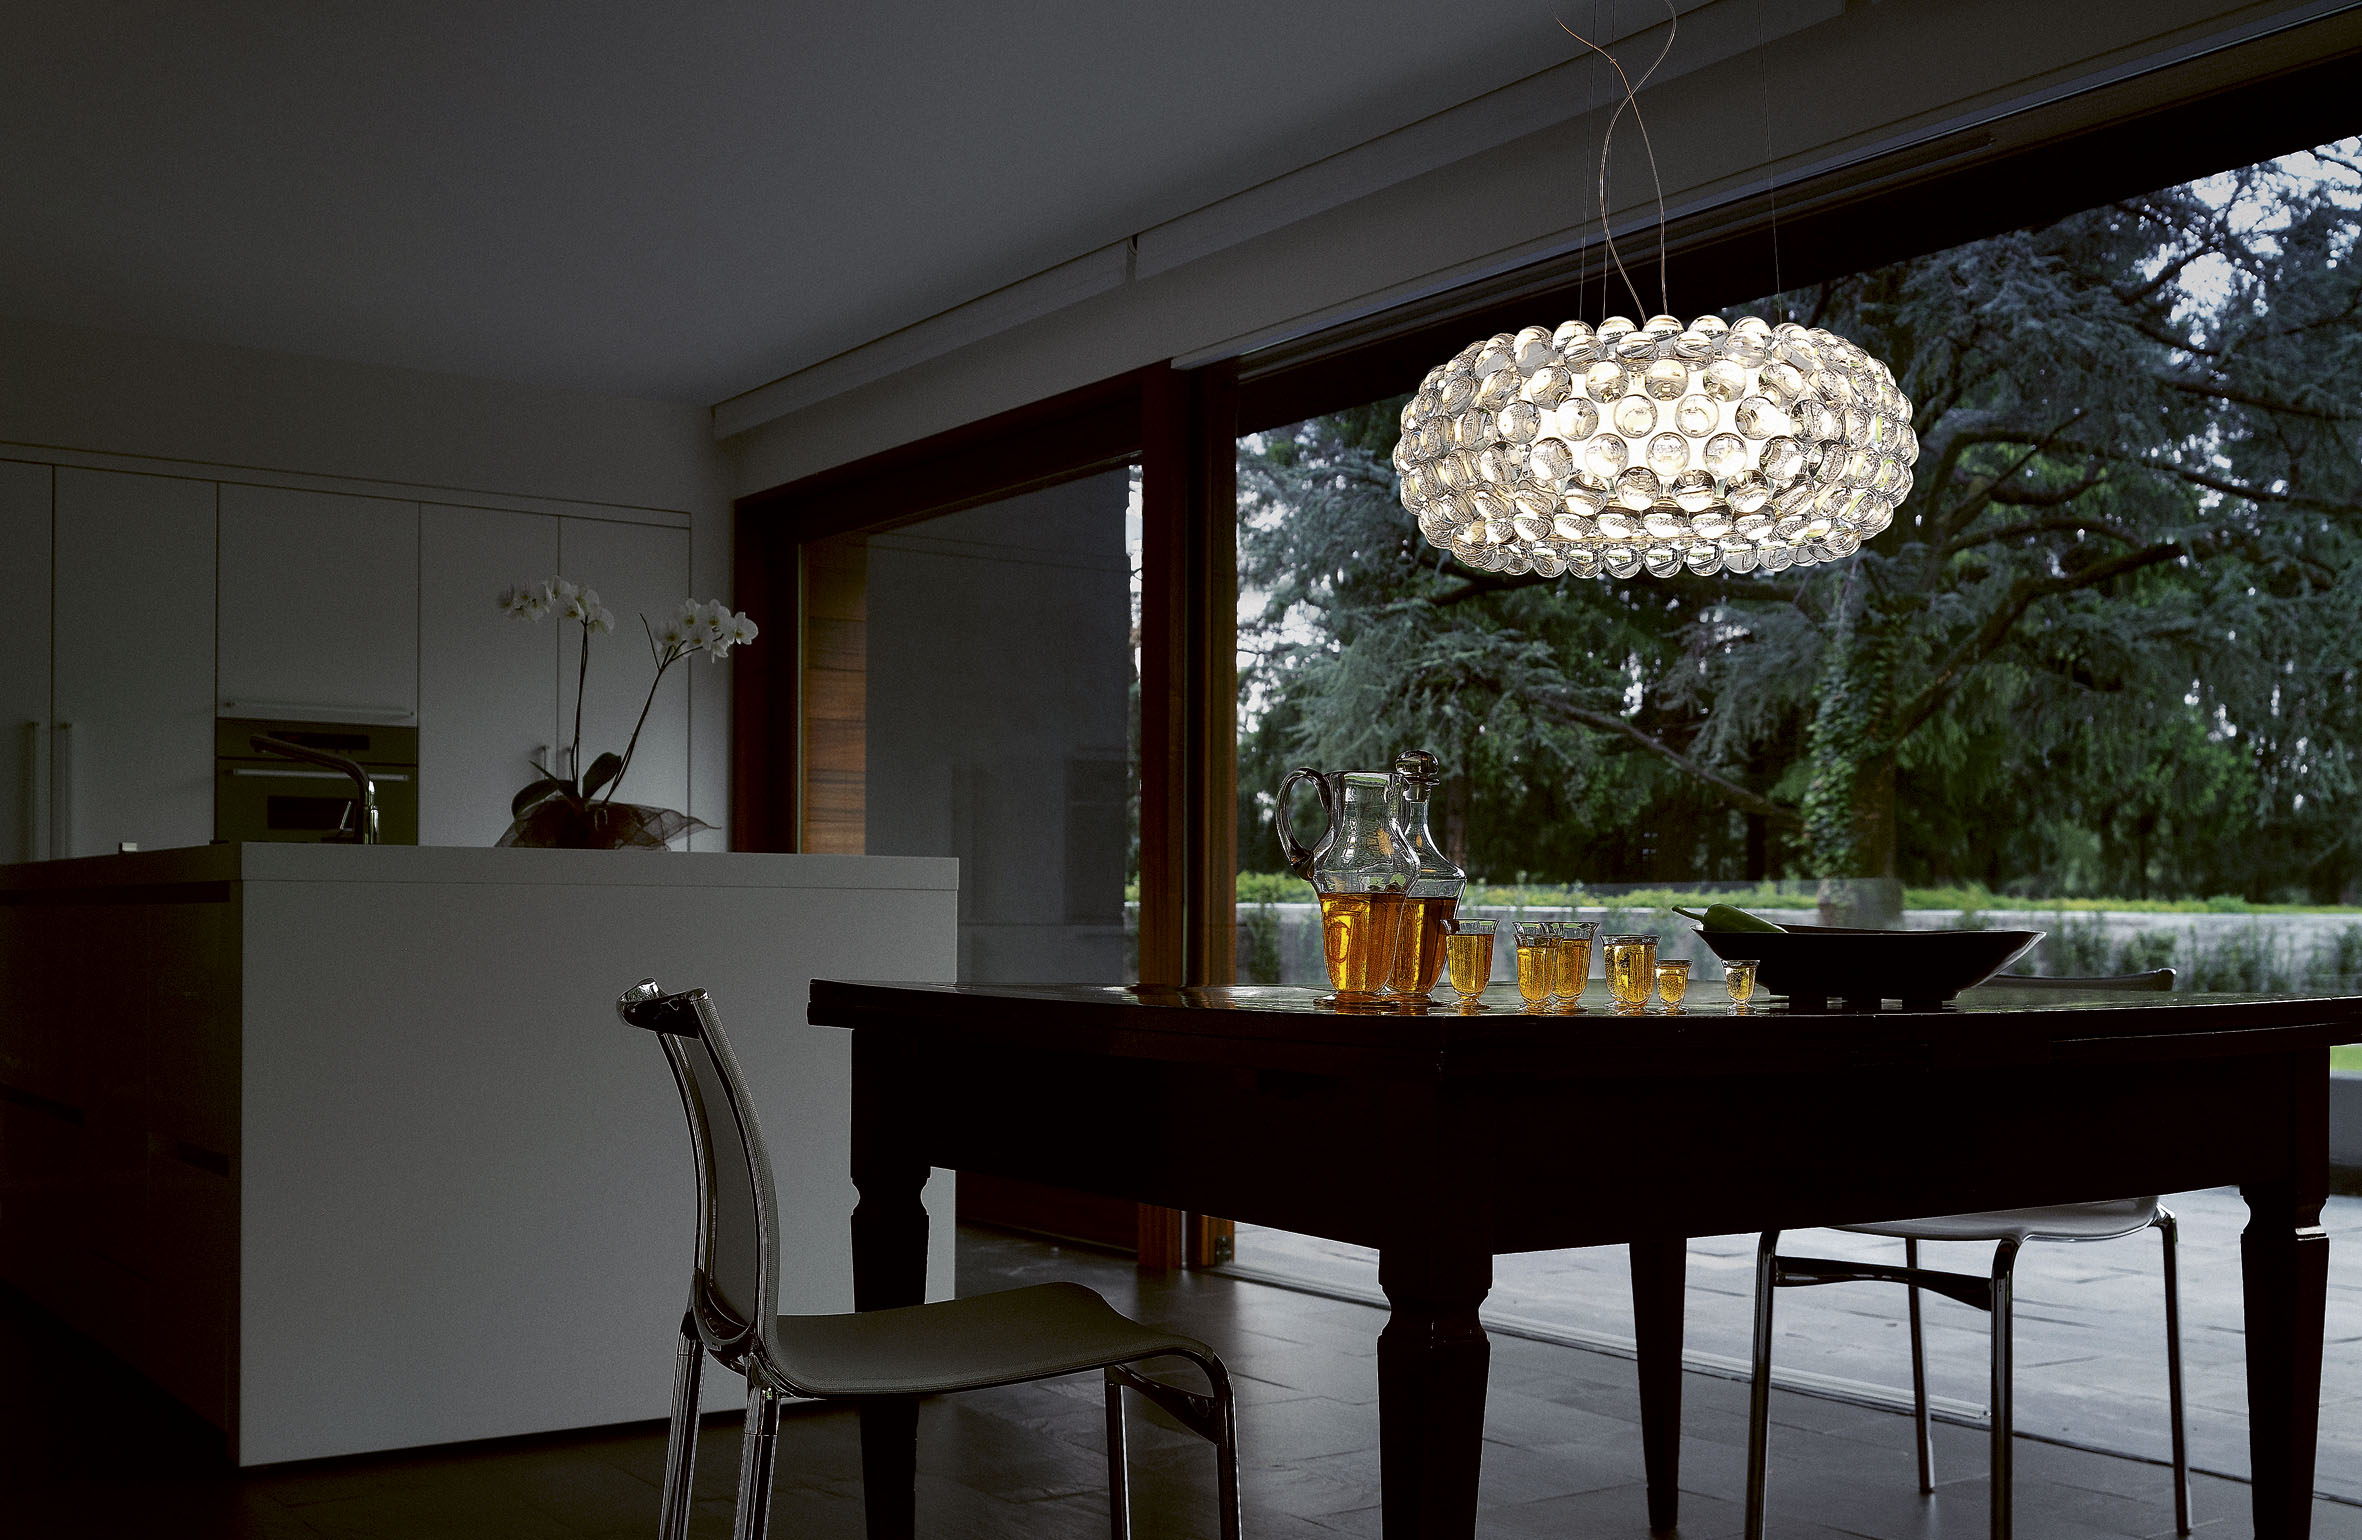 Foscarini Caboche - Jan Luppes interieurs & Melles interieur